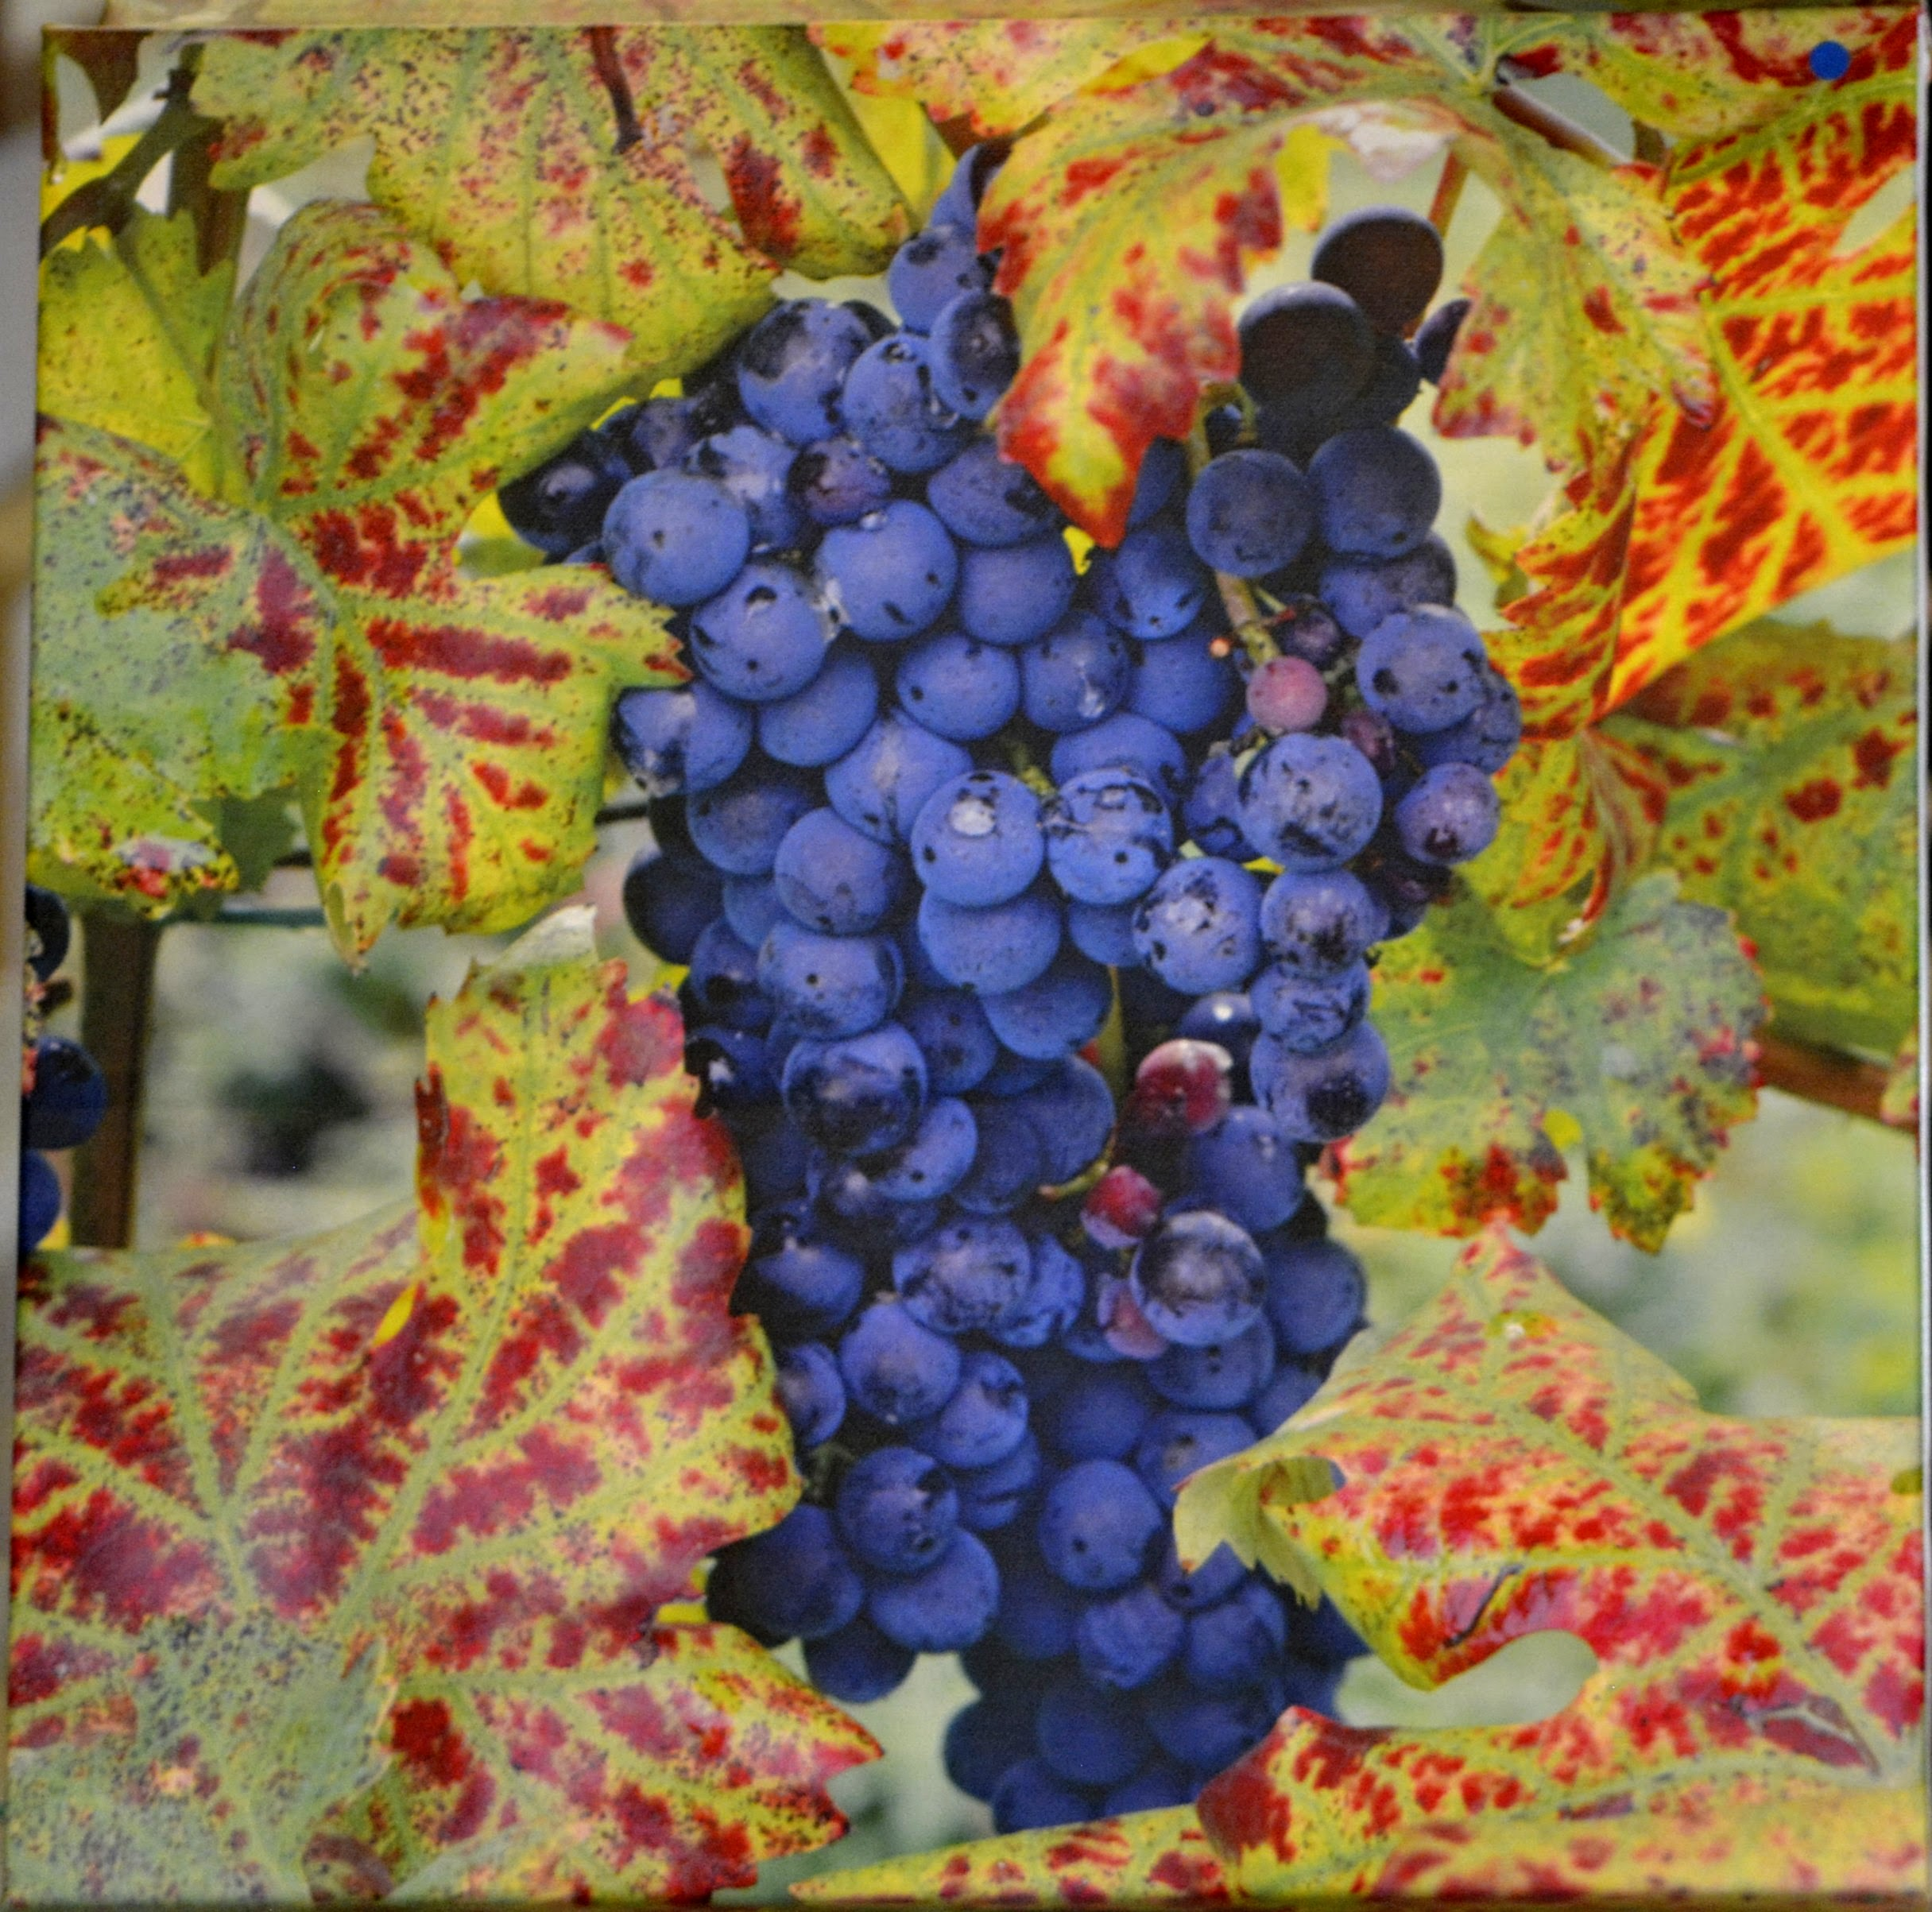 "Grapes 12"" x 12"" by Tom Mackie"